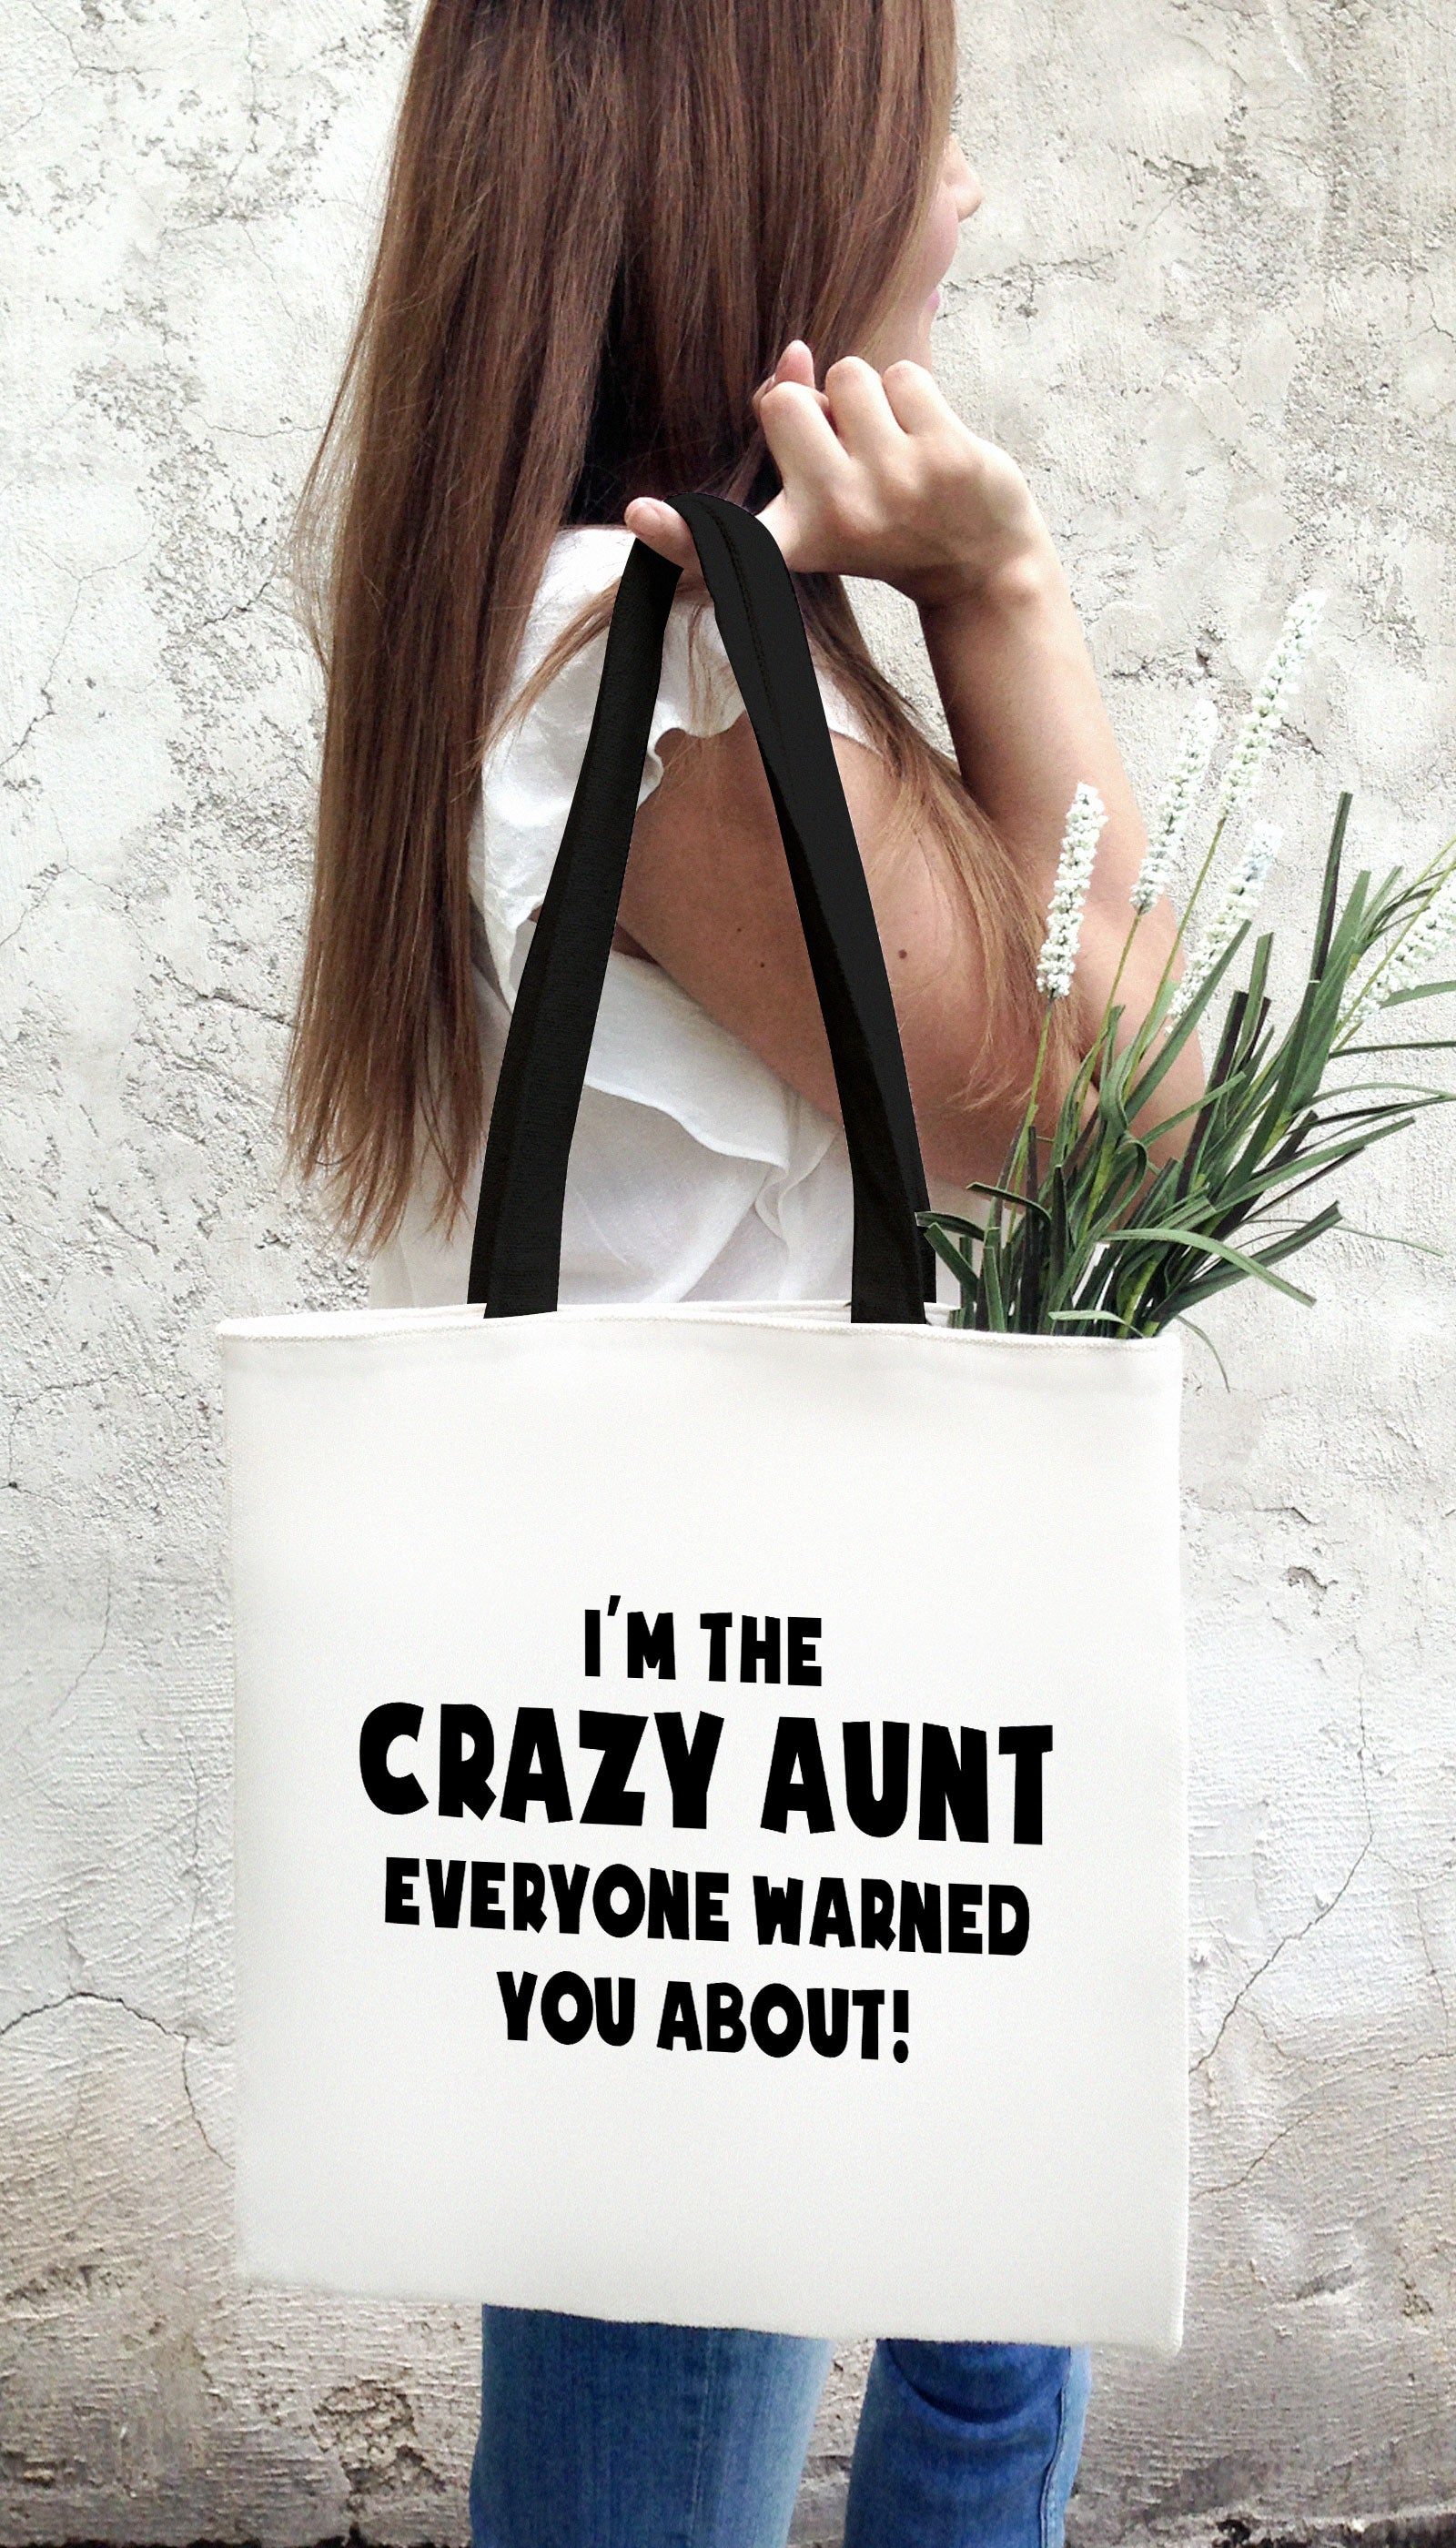 I'm The Crazy Aunt Everyone Warned You About! Funny & Clever Tote Bag Gift | Sarcastic ME